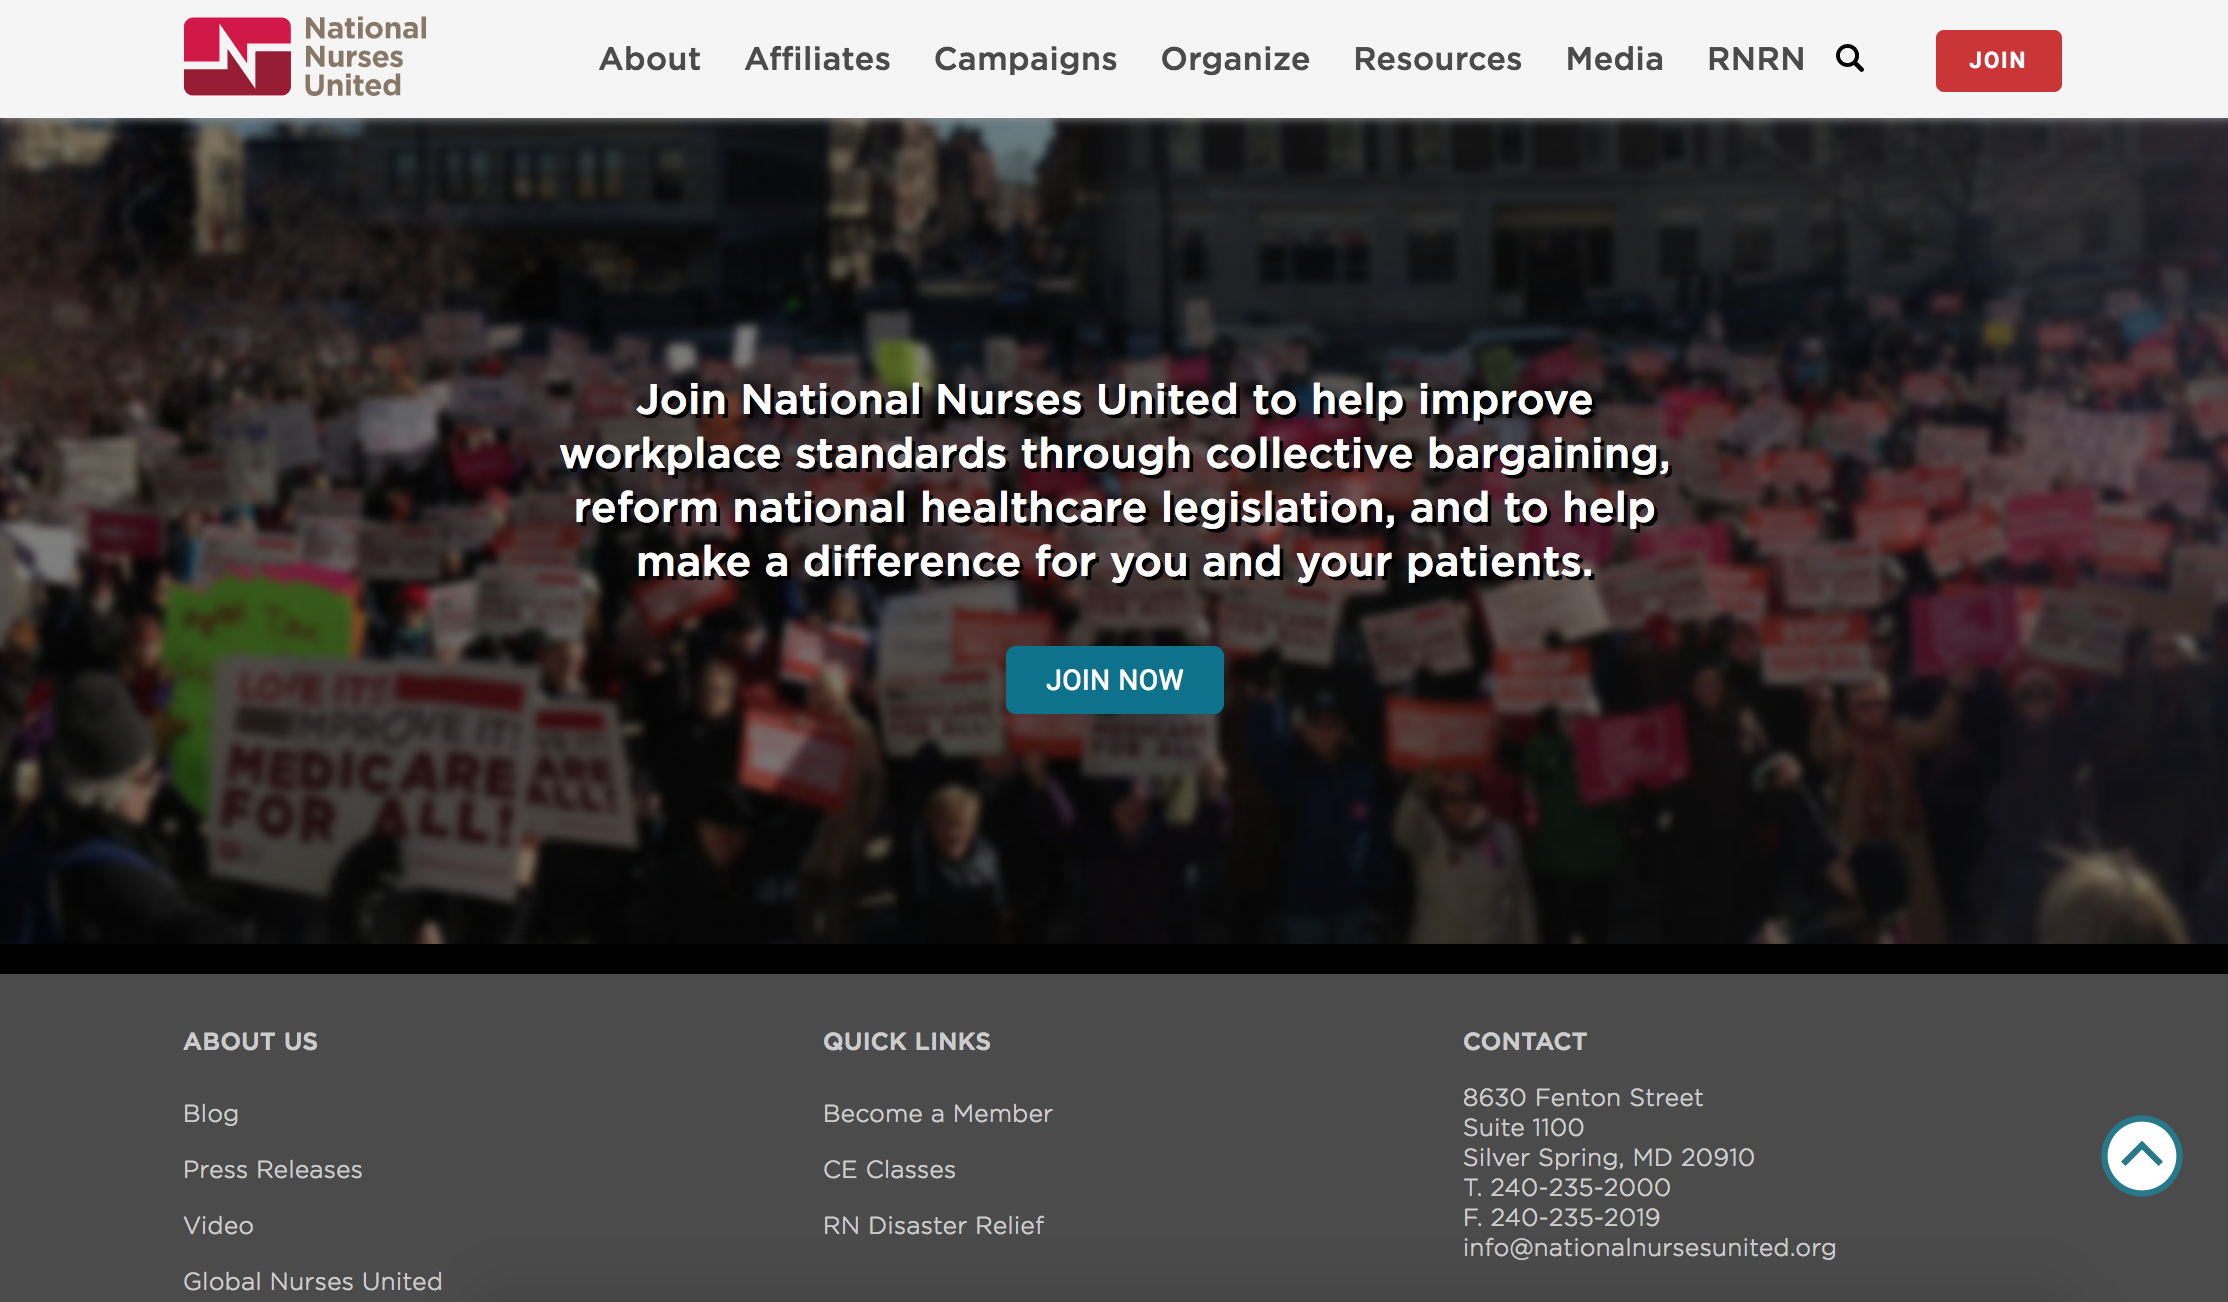 footer design of the nnu homepage with a prominent join now call to action item